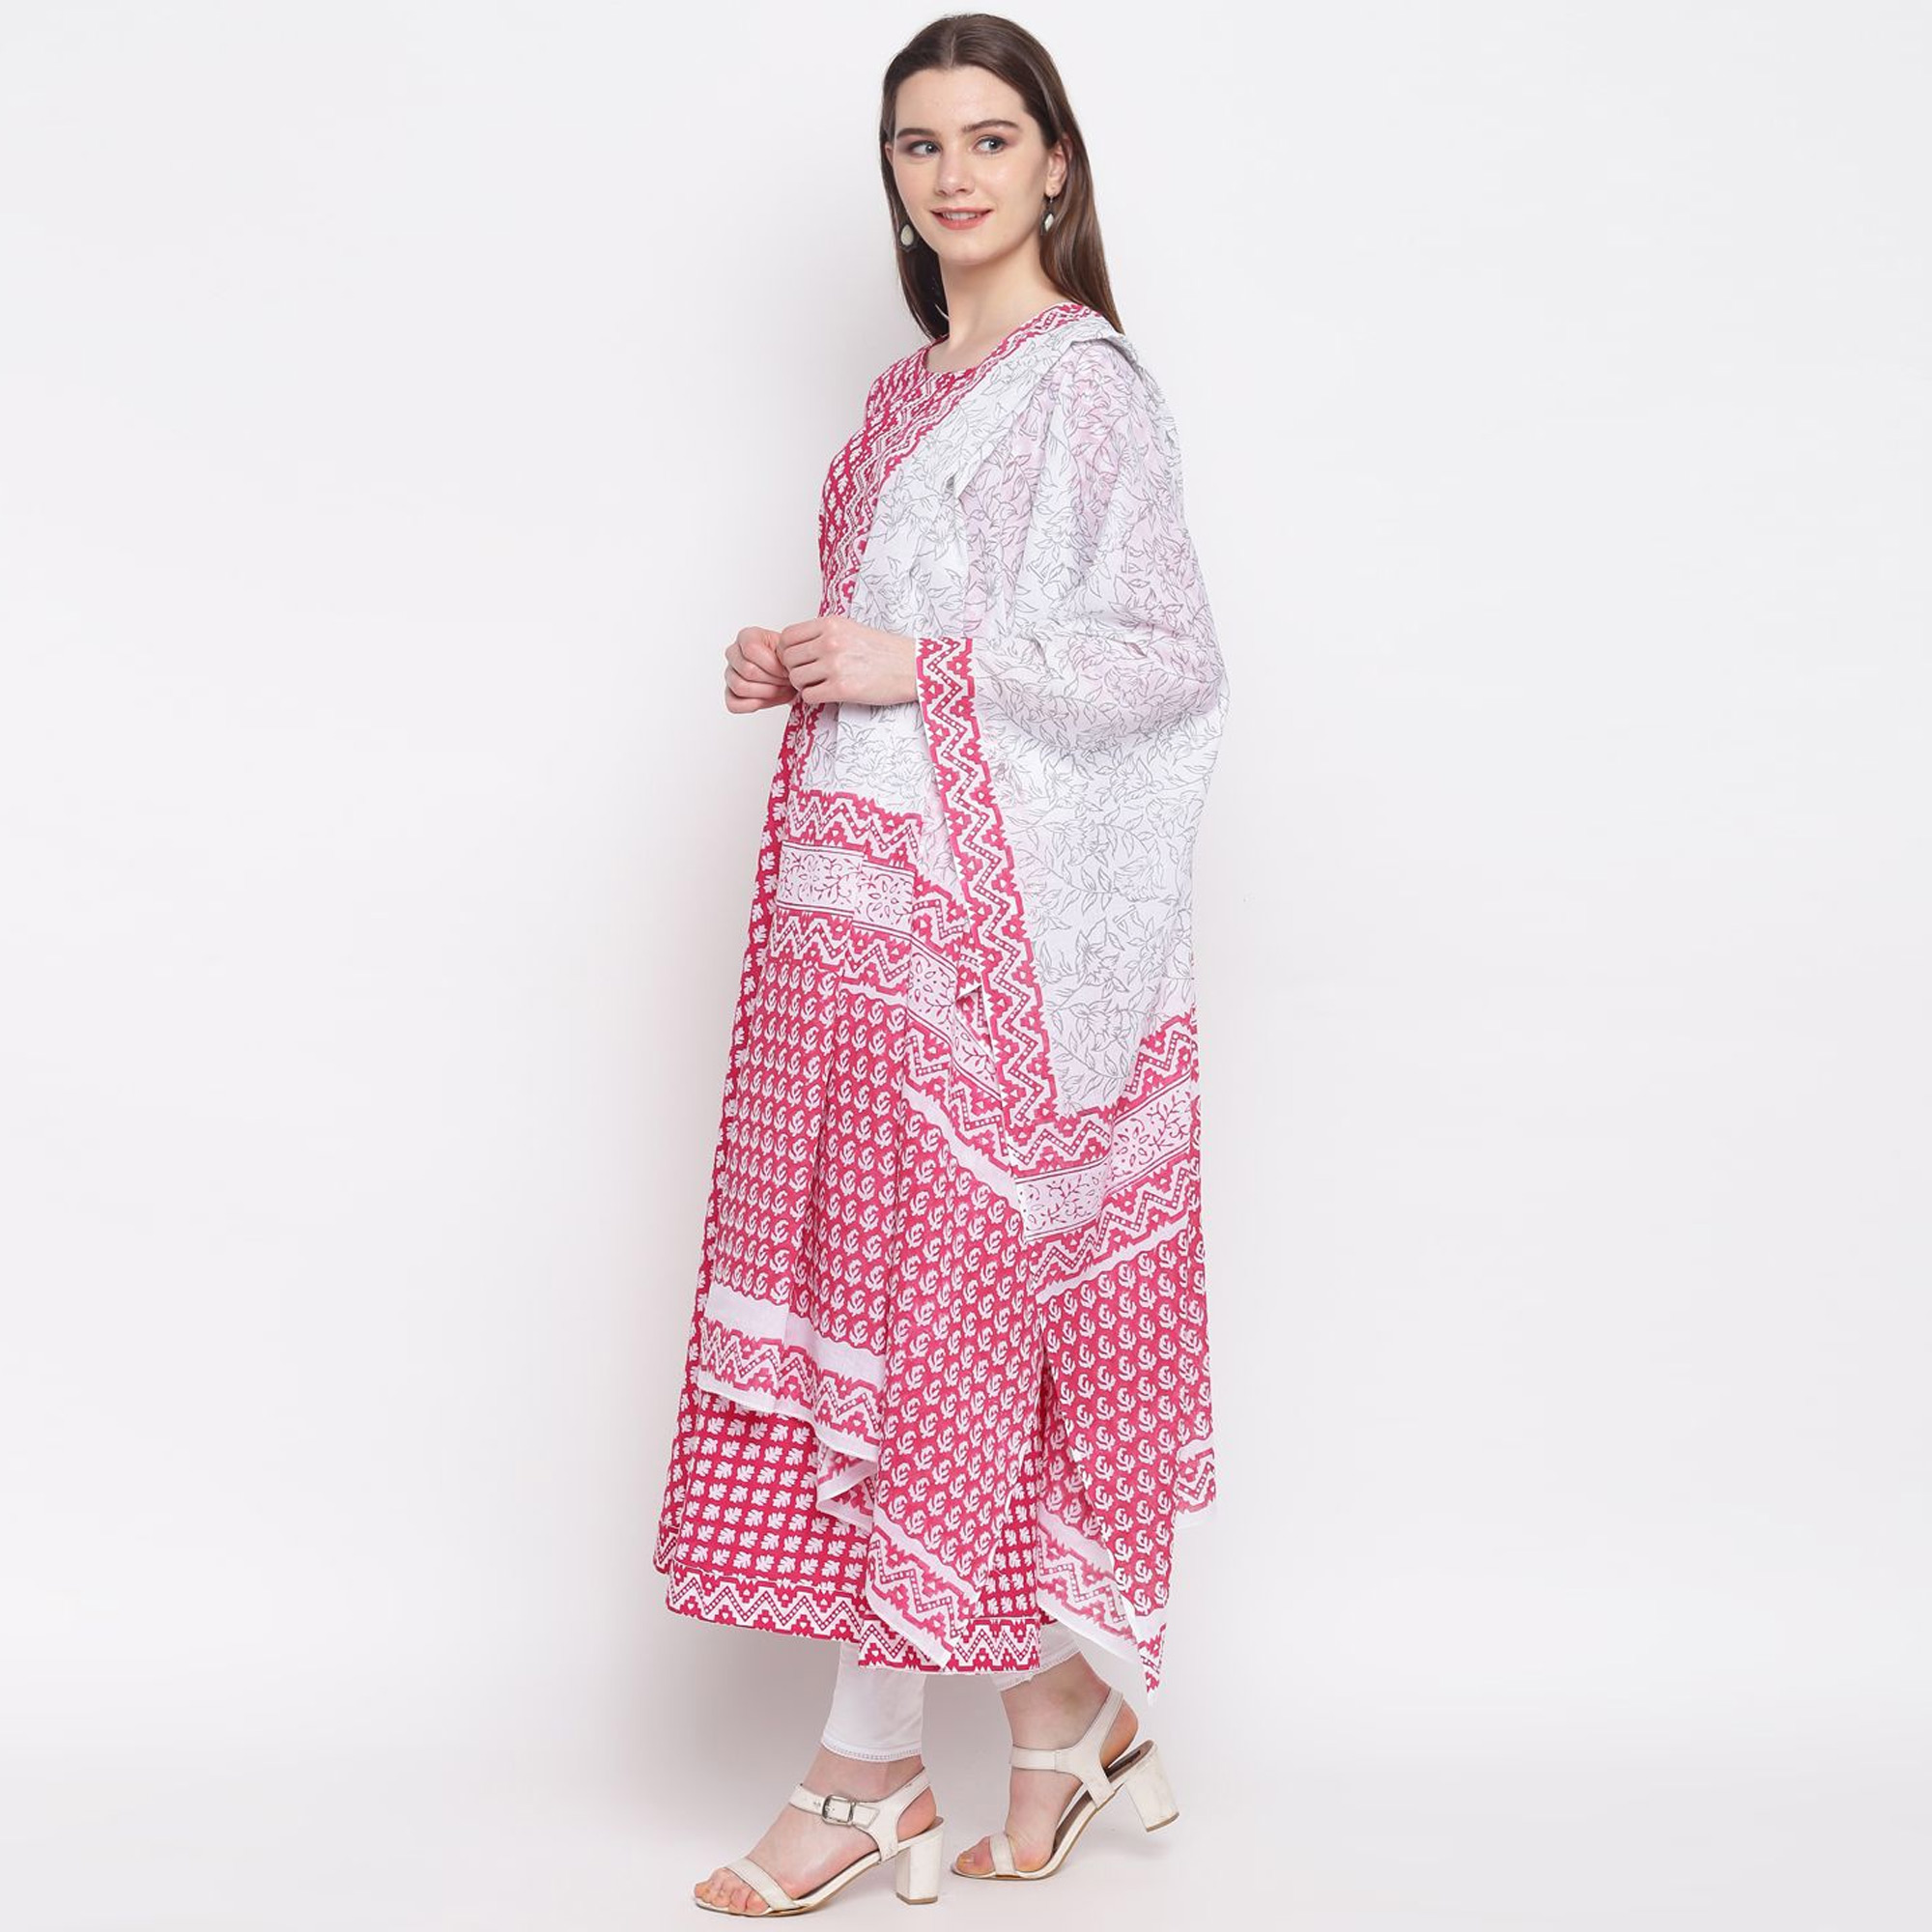 Arresting Pink-White Colored Party Wear Printed Ankle Length Cotton Kurti With Dupatta